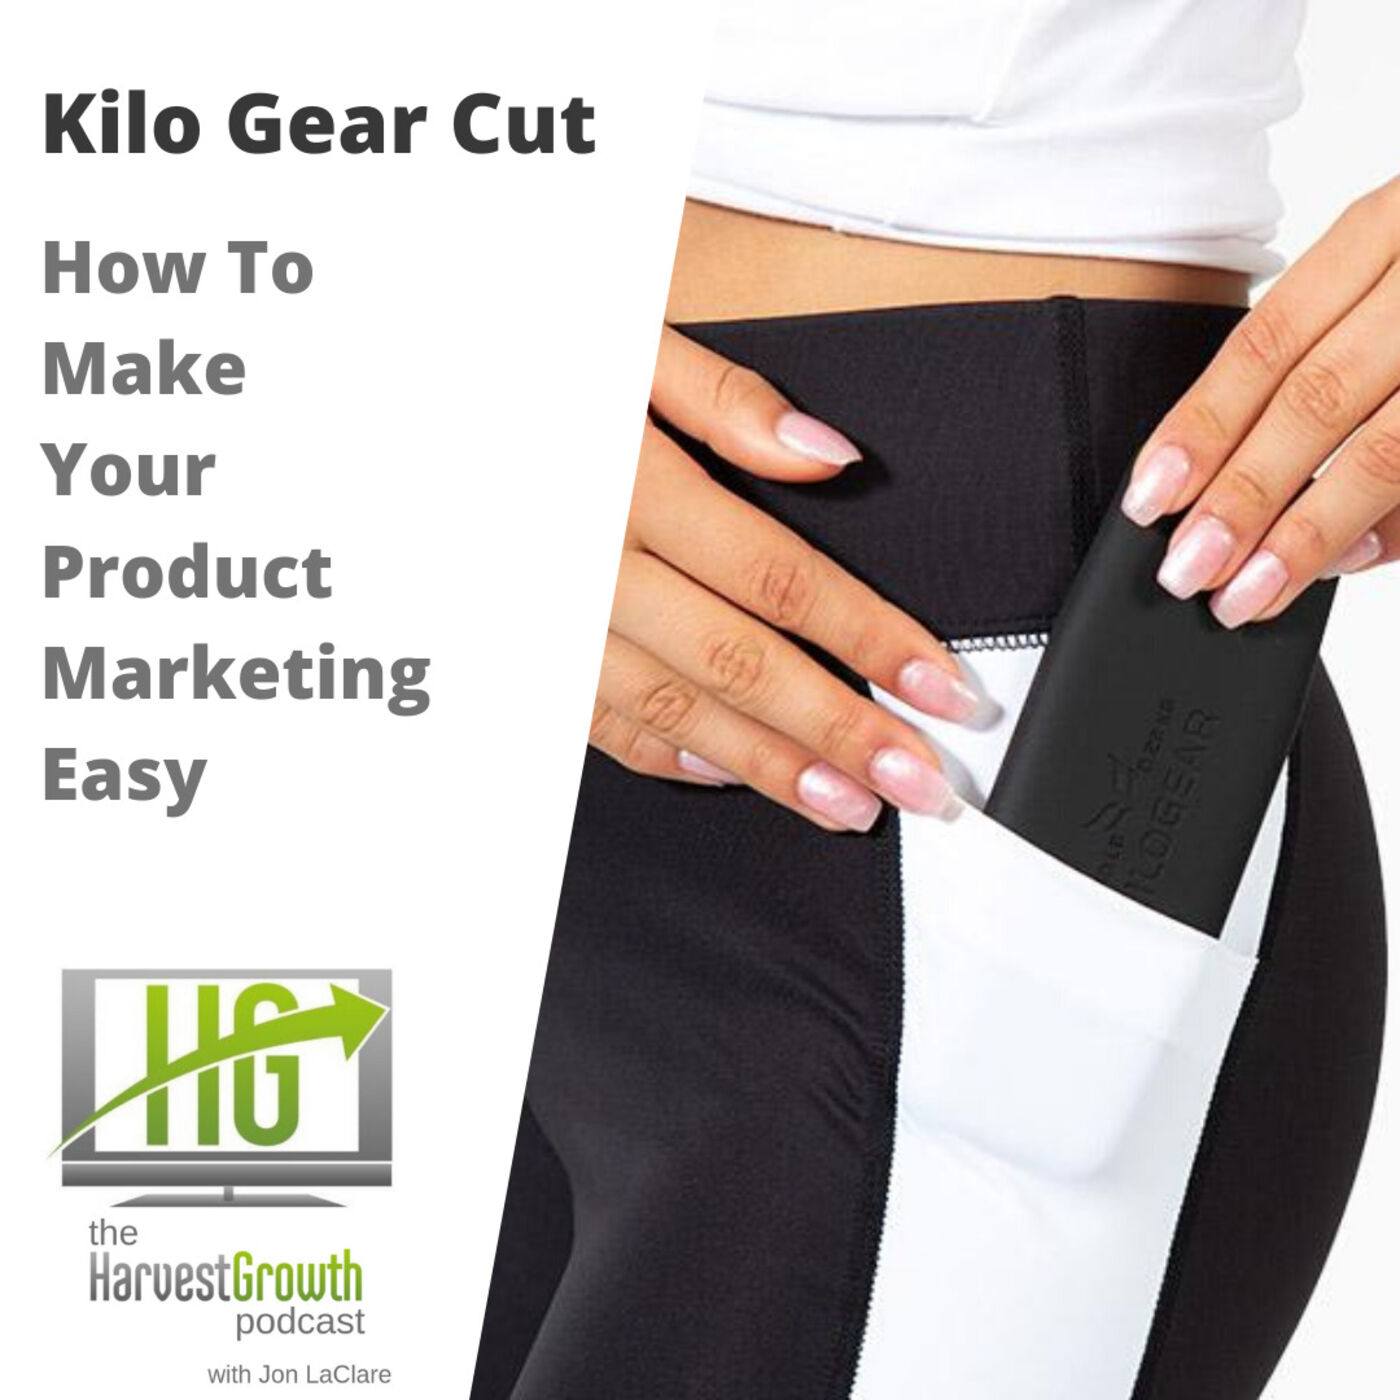 Kilo Gear Cut: How To Make Your Product Marketing Easy